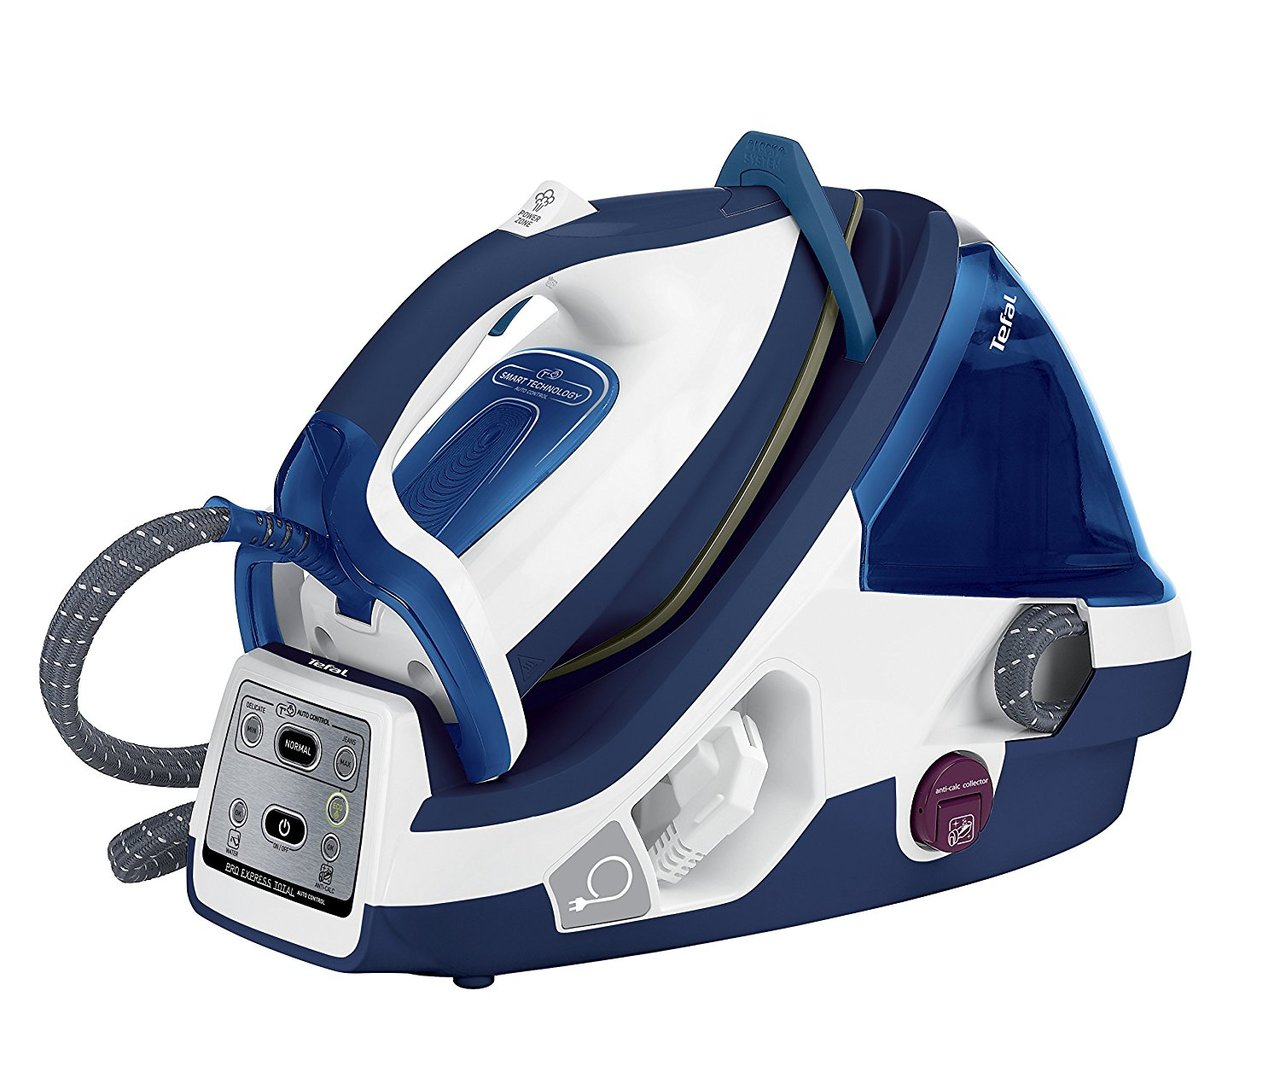 Tefal GV8962 Pro Express Total Auto Steam Generator Iron